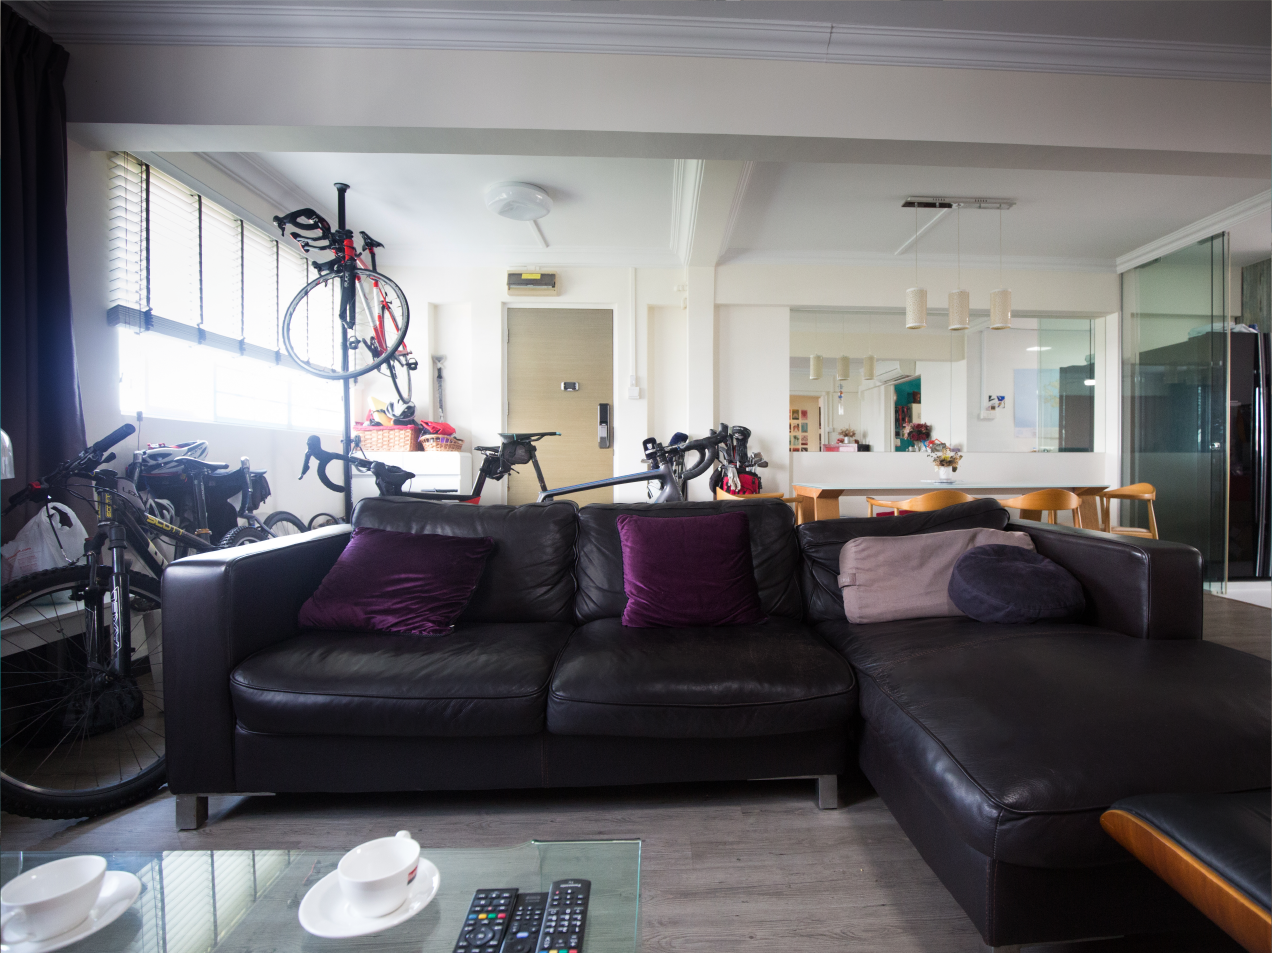 Living room of Michael's five-room resale HBD flat in Simei